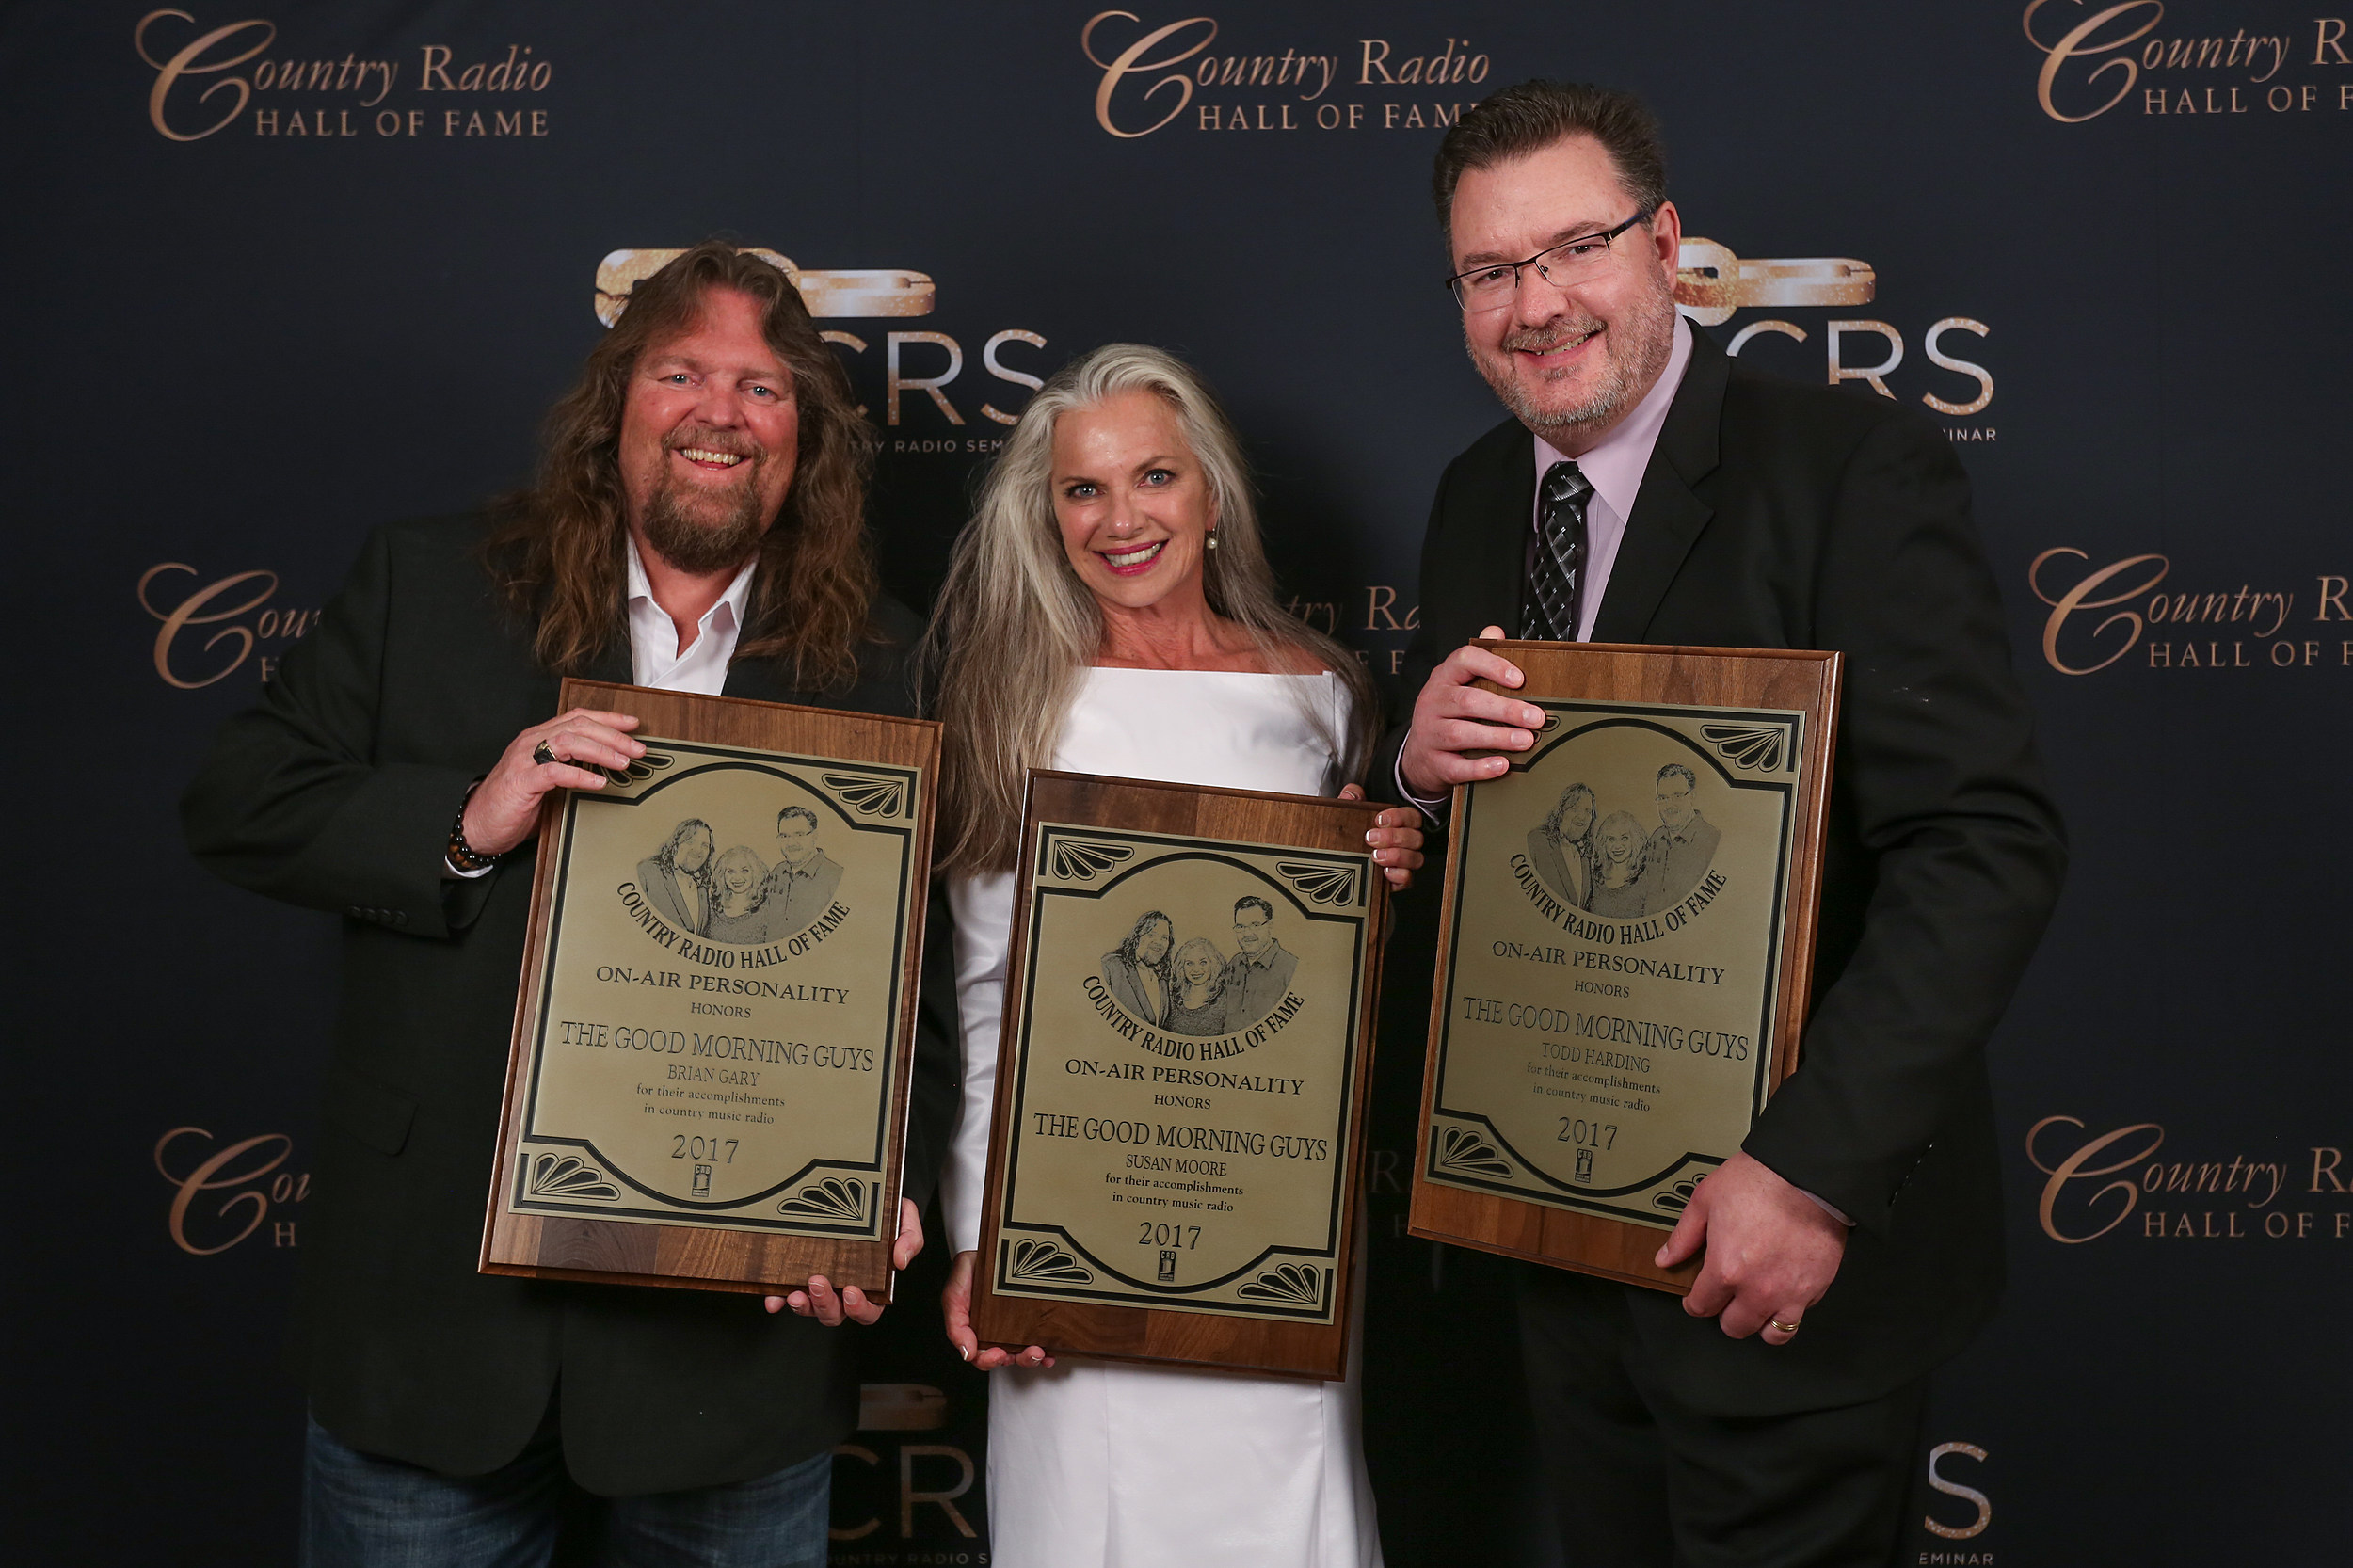 Good Morning Guys trip to the Country Radio Hall of Fame